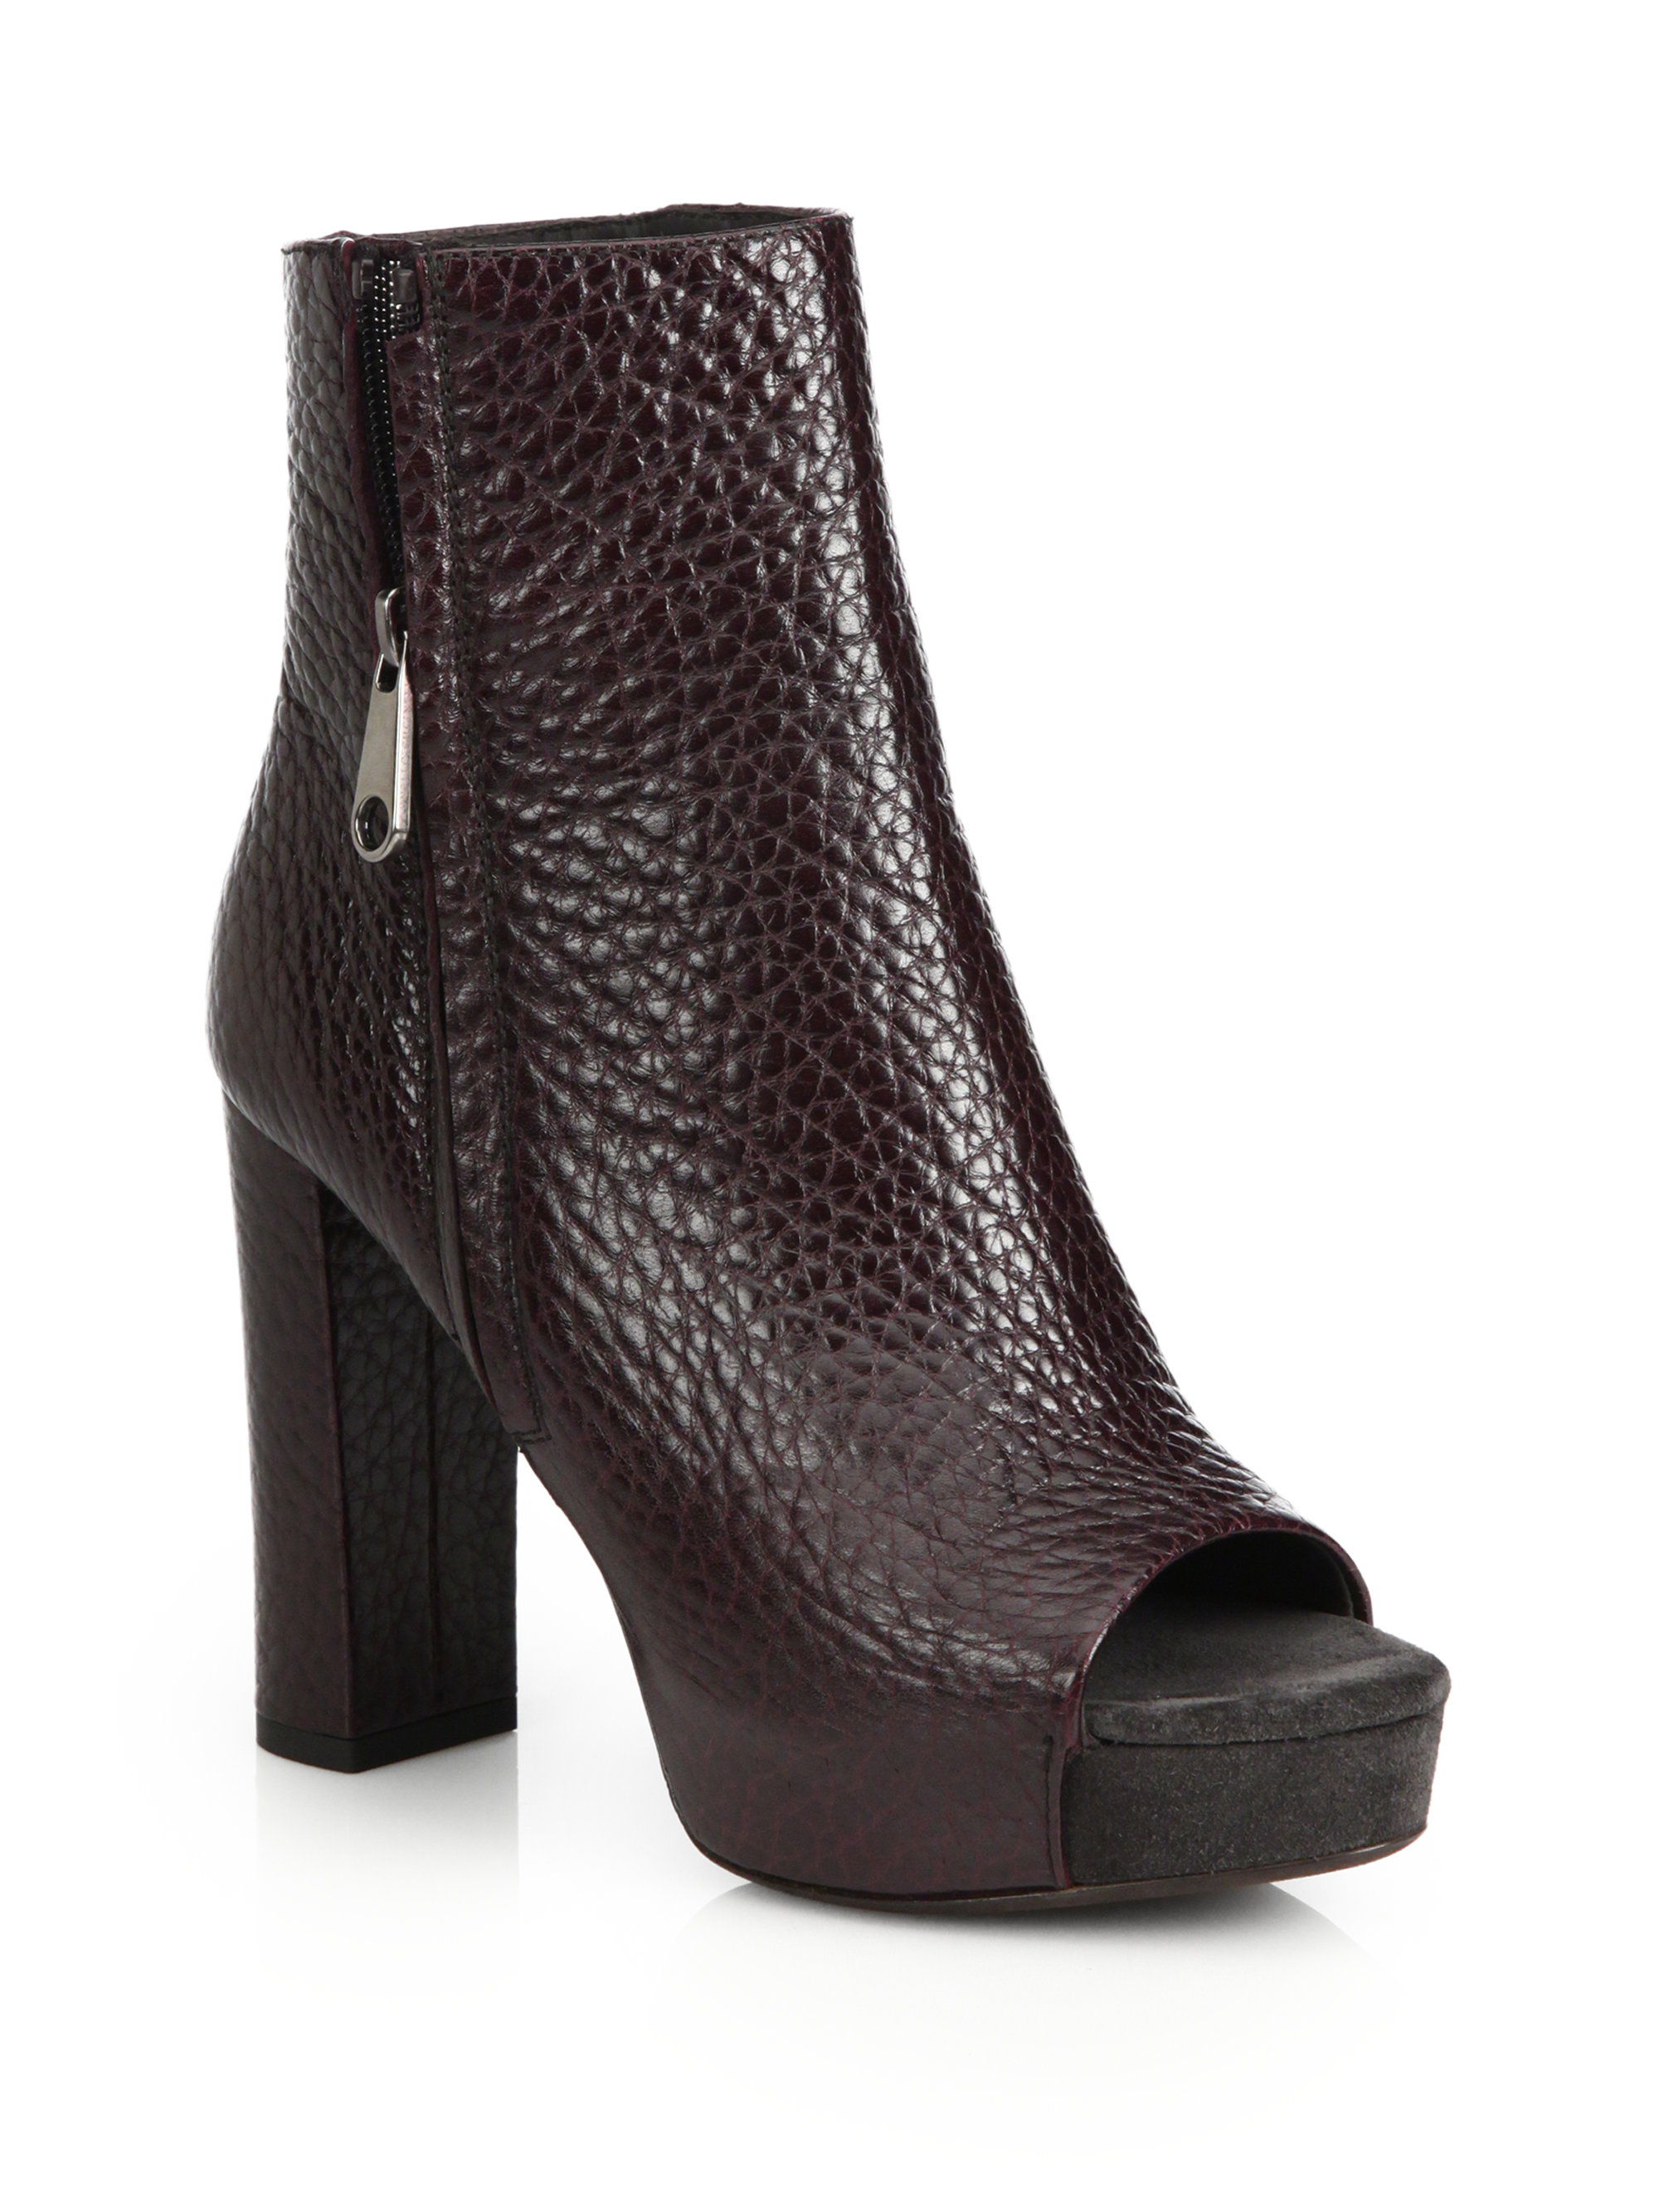 Brunello Cucinelli Monili-Embellished Peep-Toe Bootie discount shopping online nicekicks cheap online free shipping with mastercard authentic Nk0oB48DW